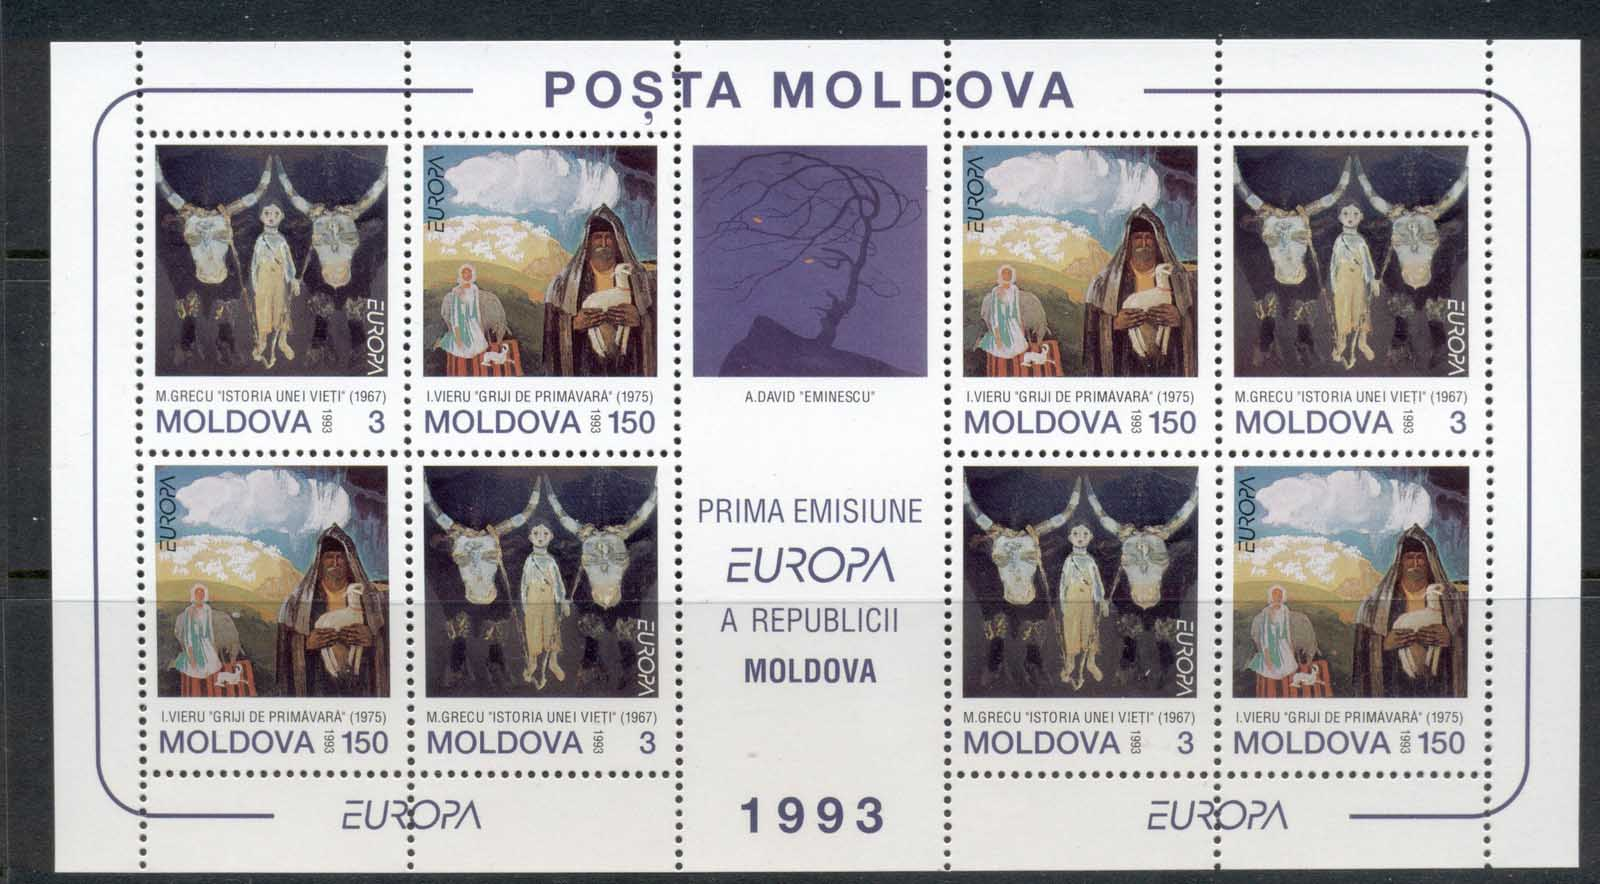 Moldova 1993 Europa, Contemporary Art MS MUH